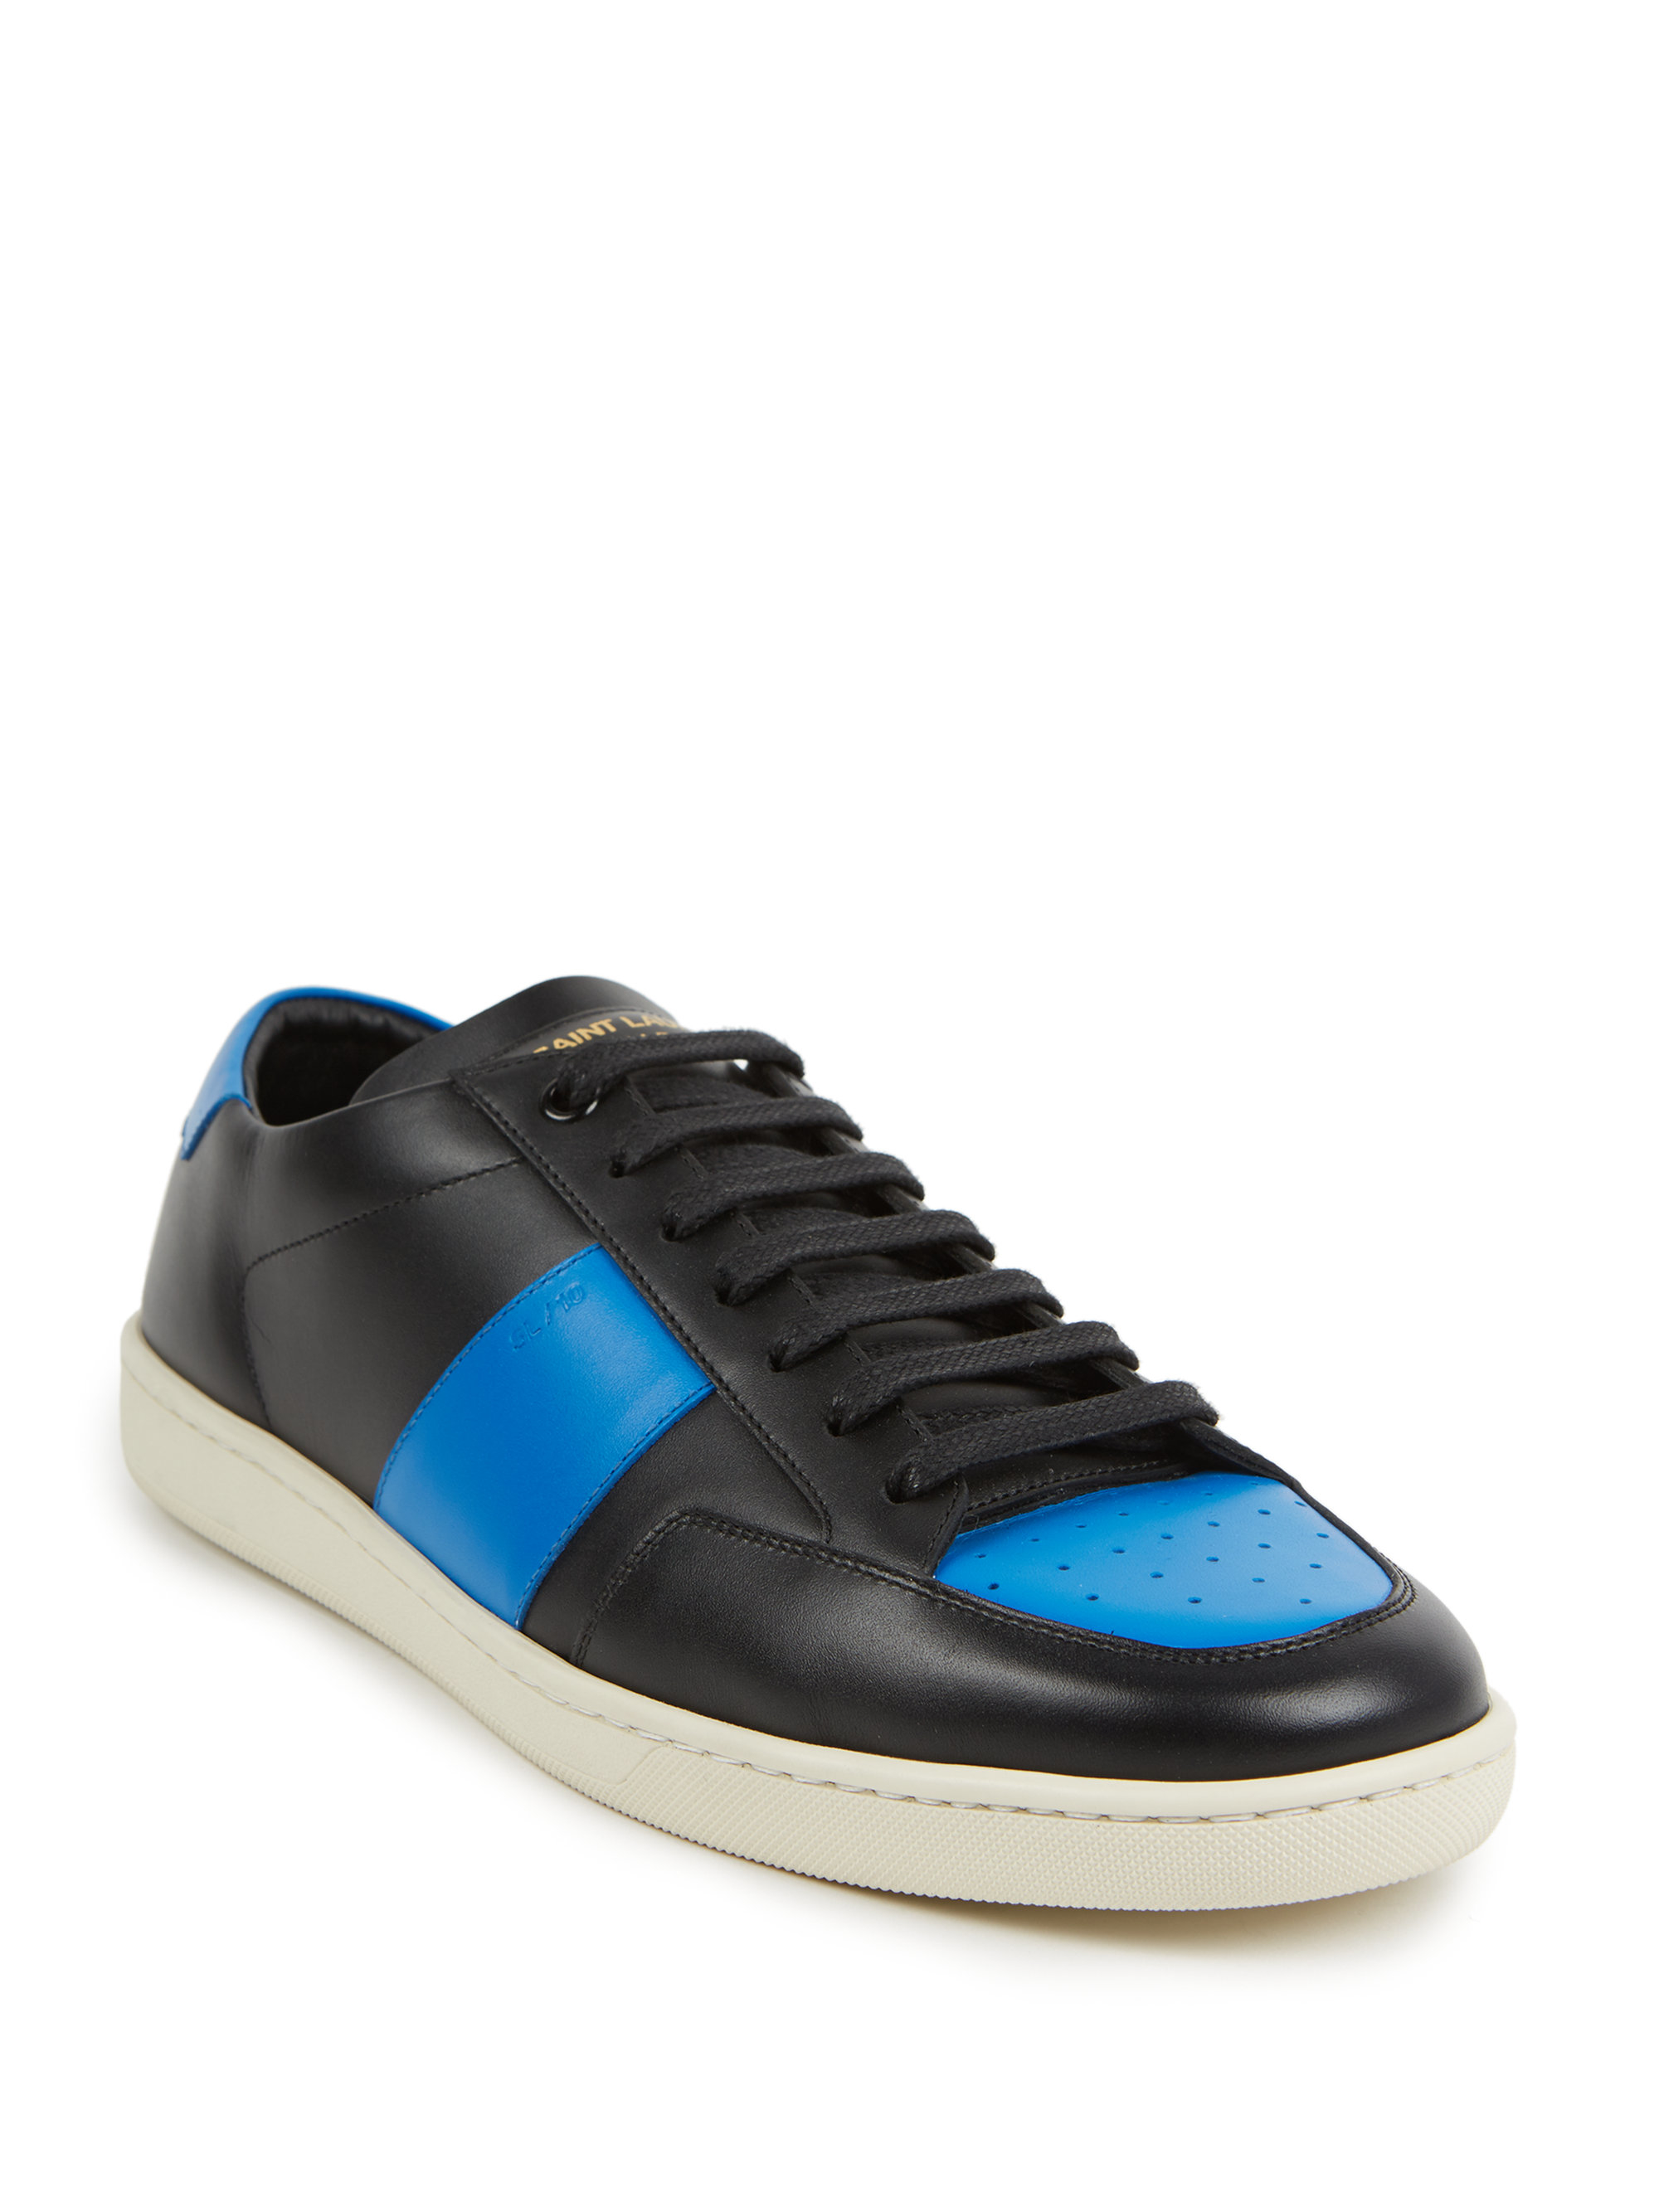 saint laurent colorblock leather sneakers in blue for men lyst. Black Bedroom Furniture Sets. Home Design Ideas